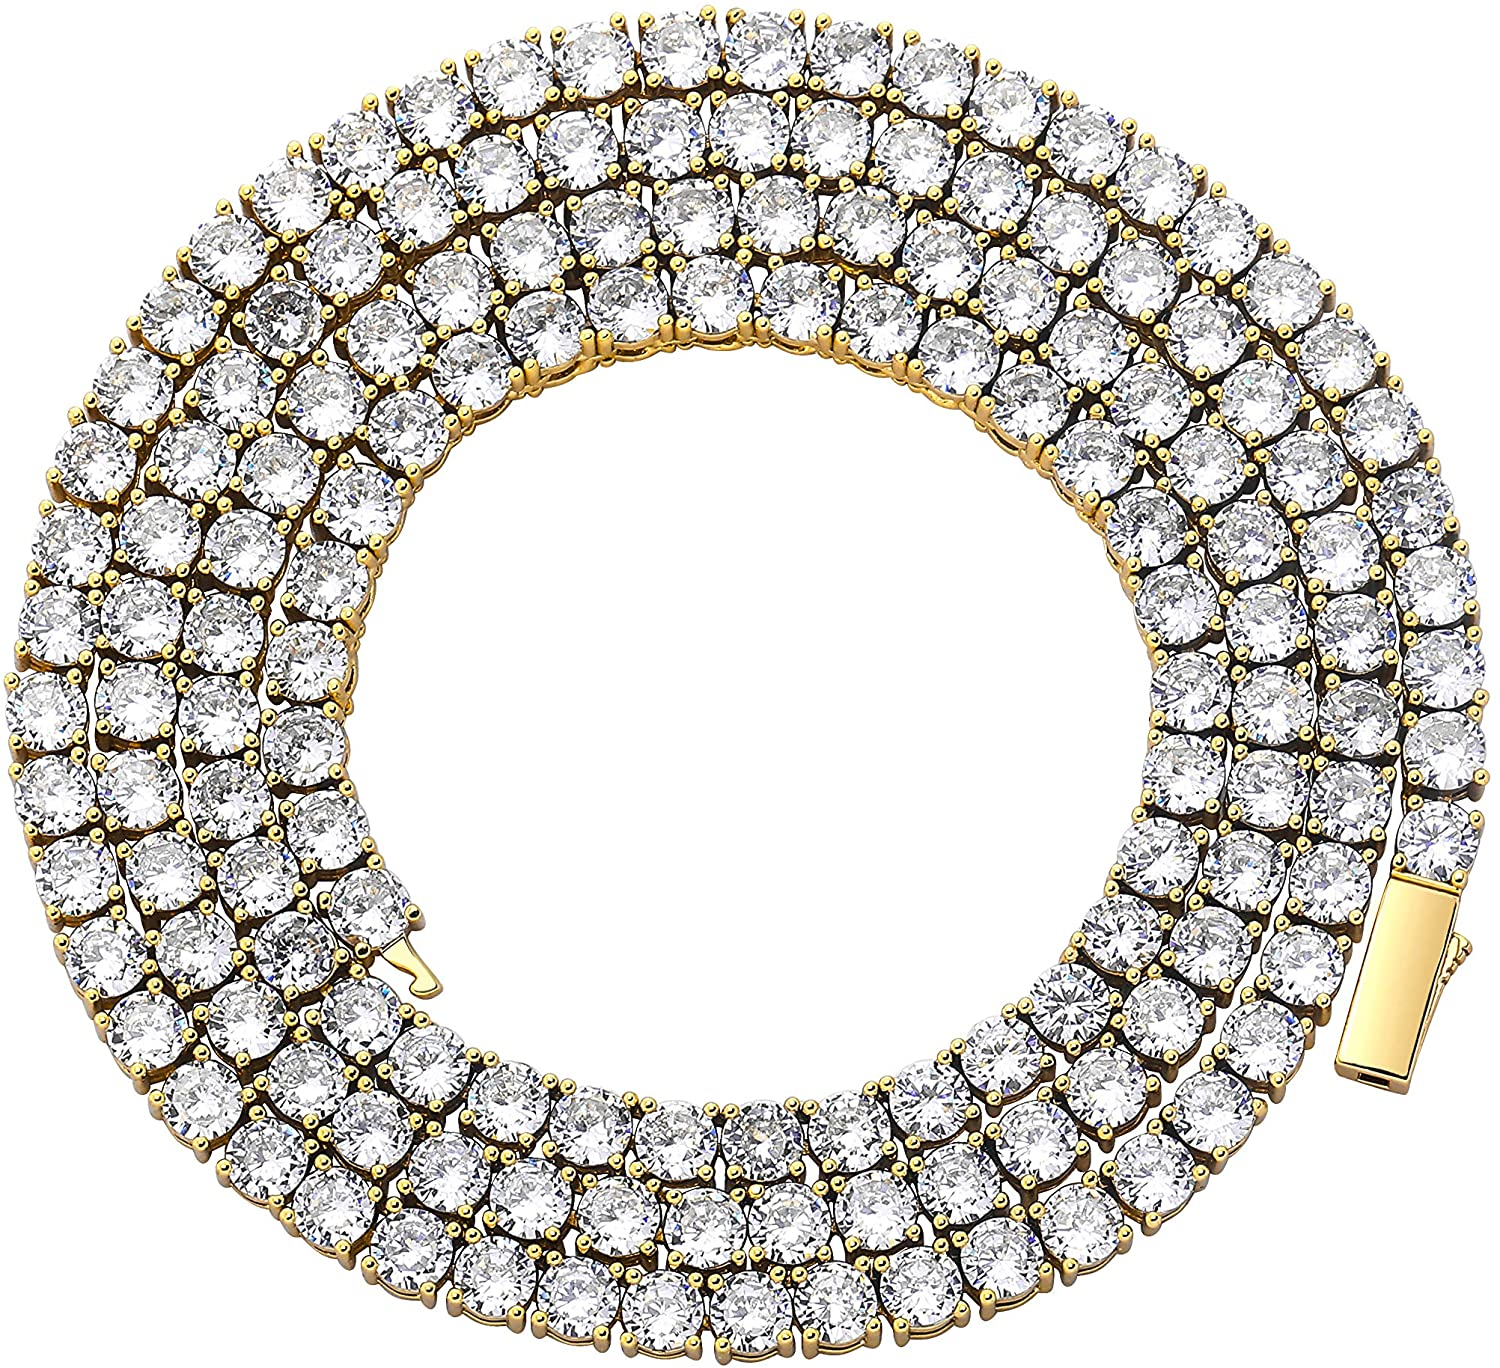 TOPGRILLZ Diamond Choker Tennis Necklace for Women 1 Row 3-6mm 14K Gold Plated Iced Out Cubic Zironia Tennis Chain for Men Customized Link Clasp